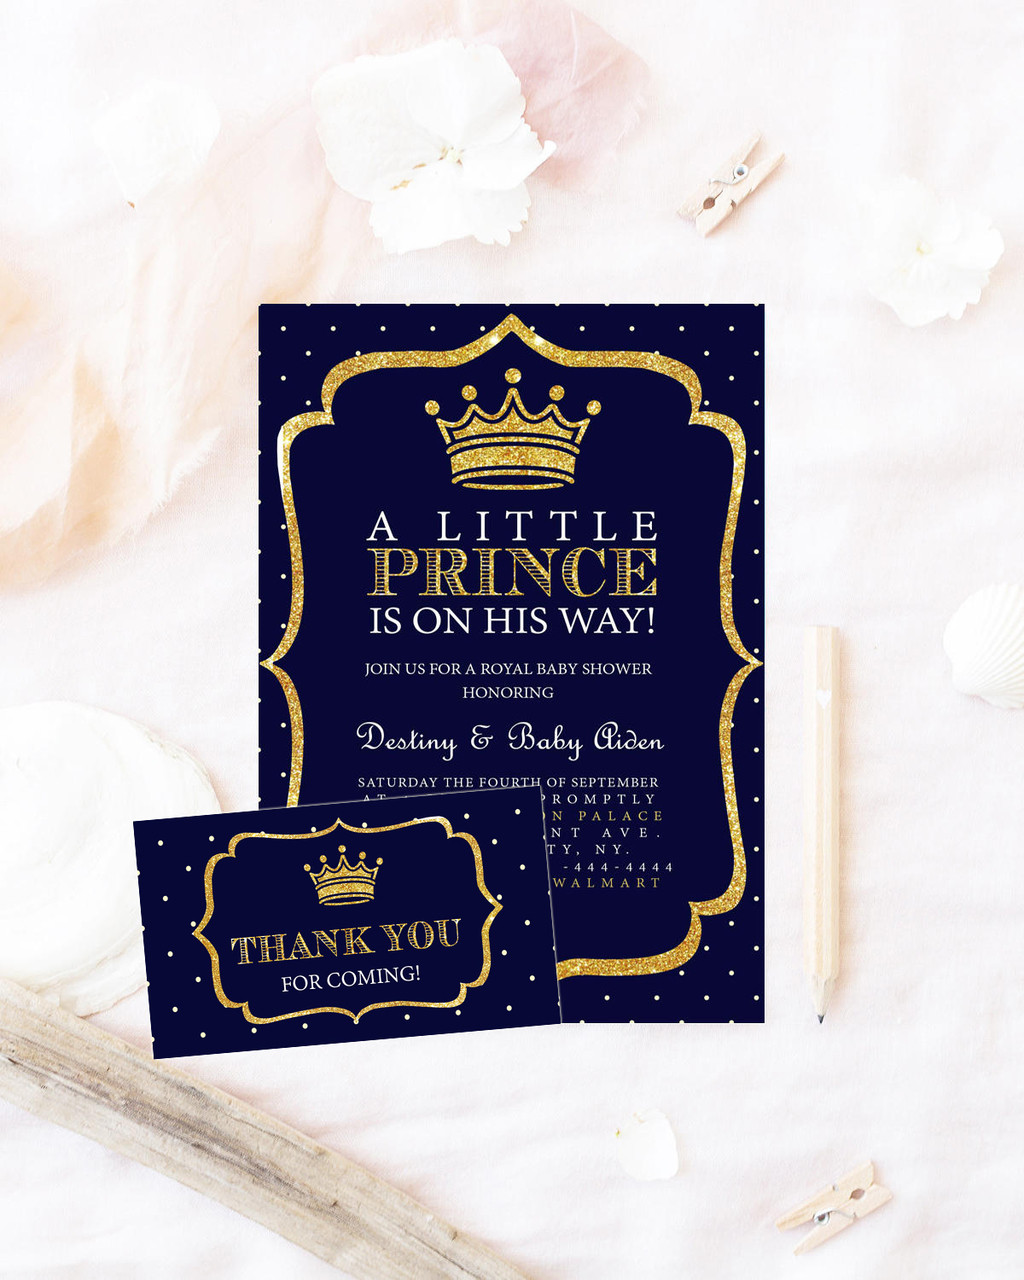 prince baby shower invitation, royal baby